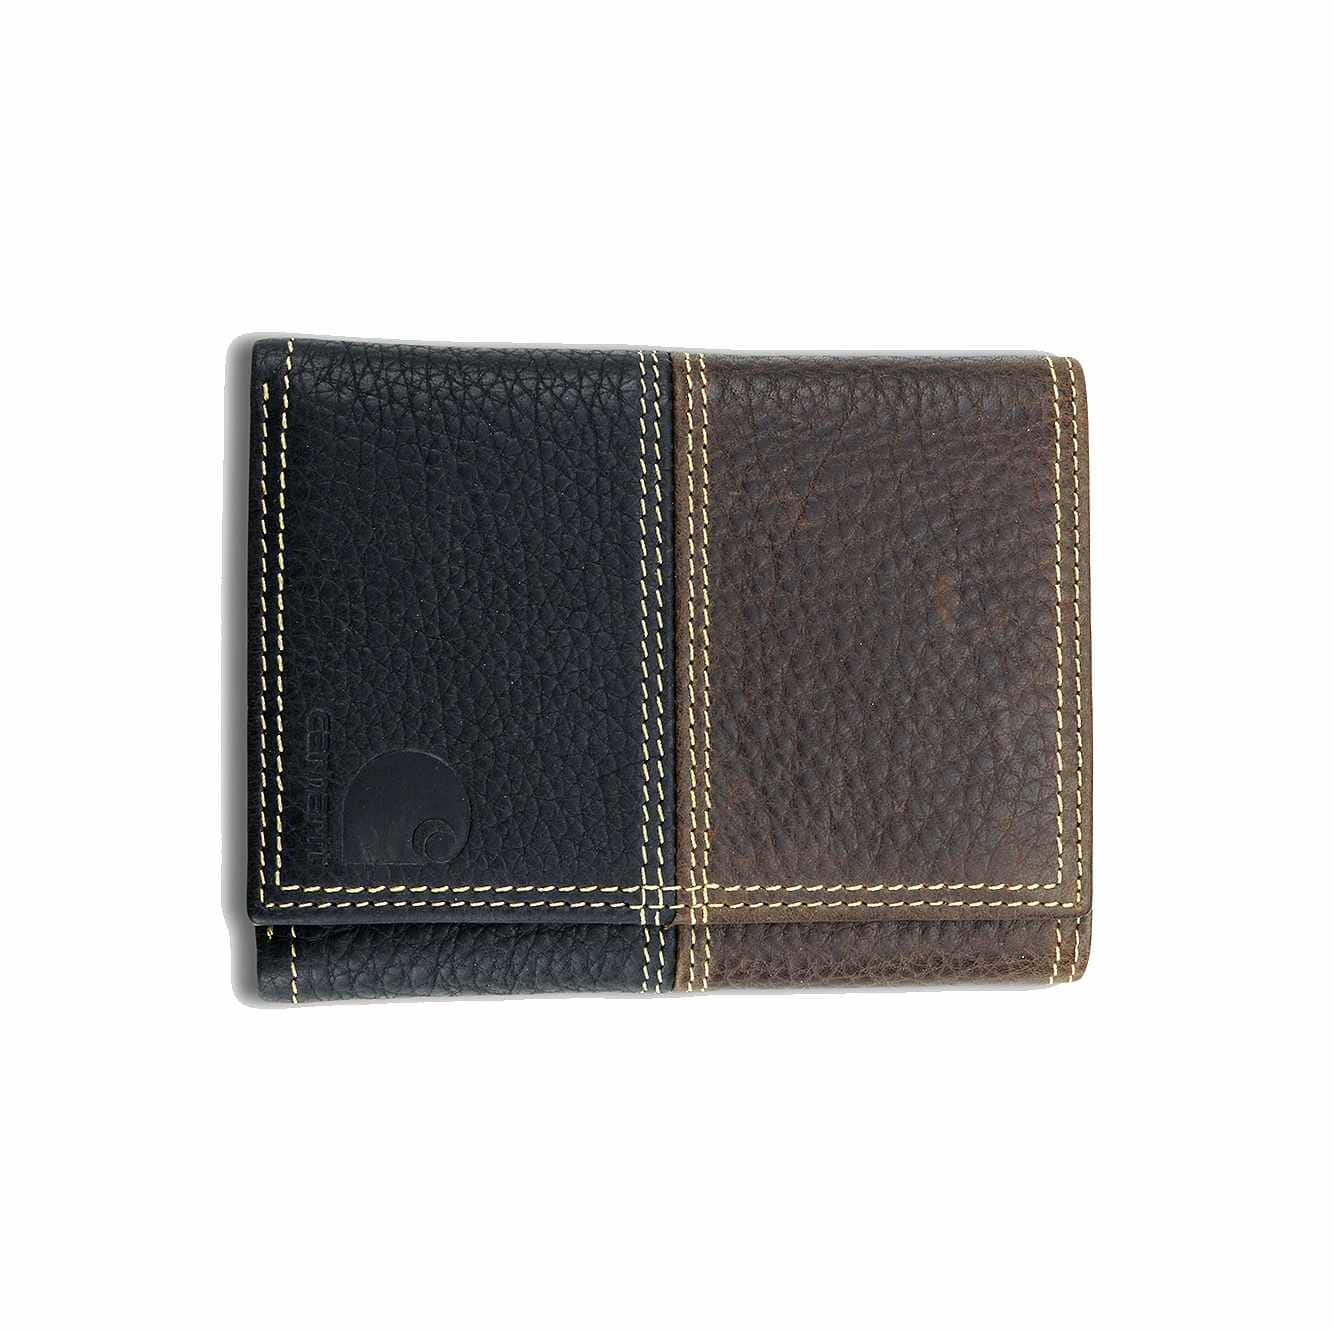 Picture of Rugged Trifold Wallet in Brown and Black Leather